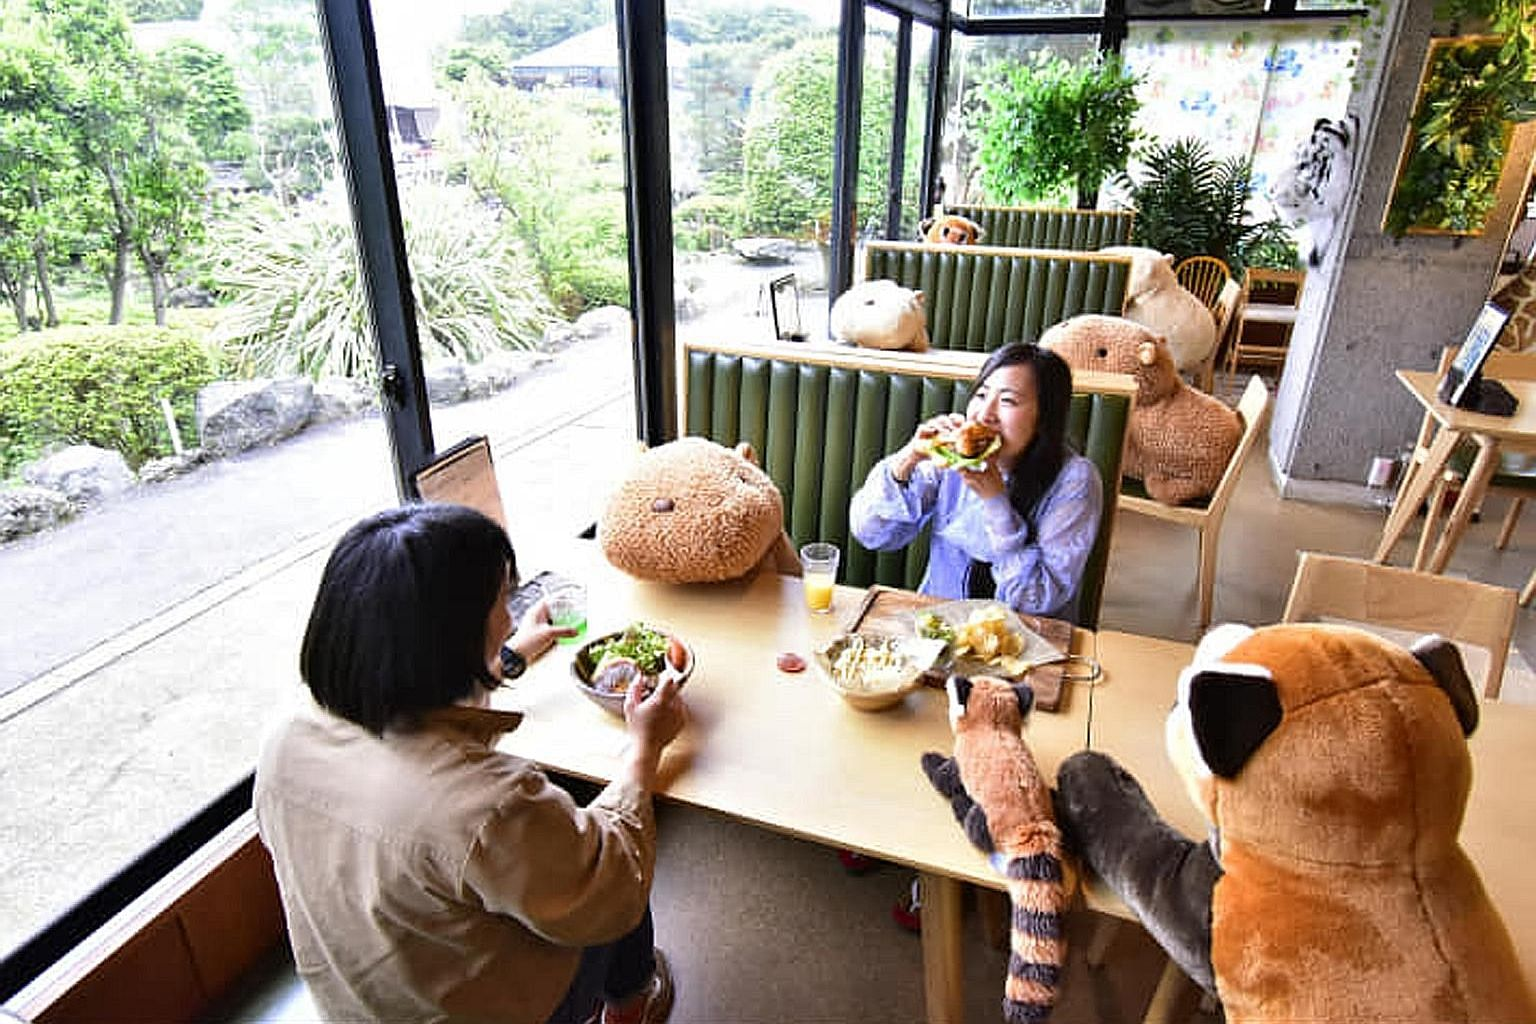 Izu Shaboten Zoo in Shizuoka, Japan, has turned to adorable stuffed animals for a fun way to observe safe distancing. The stuffed animals dining at the restaurant include red pandas and giraffes. The layout of the restaurant has also been adjusted to keep